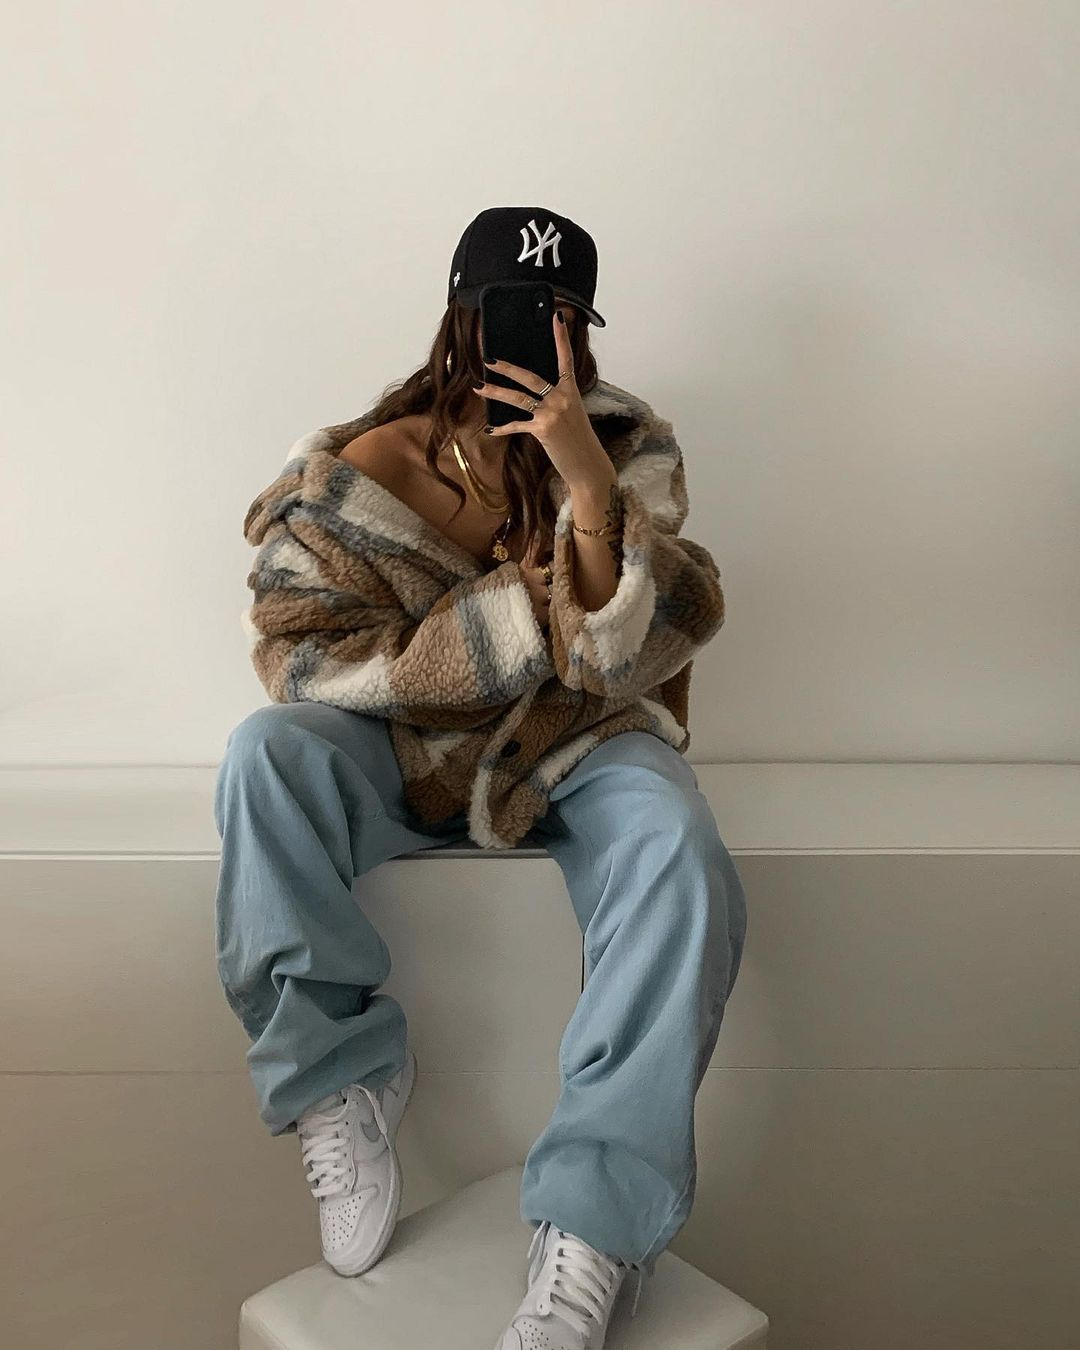 Kim Duong Germany Stuttgart On Instagram No Day Without A Cozy Fit Full Outfit Boohoo Advertisement Wer In 2021 Fashion Streetwear Fashion Fashion Inspo